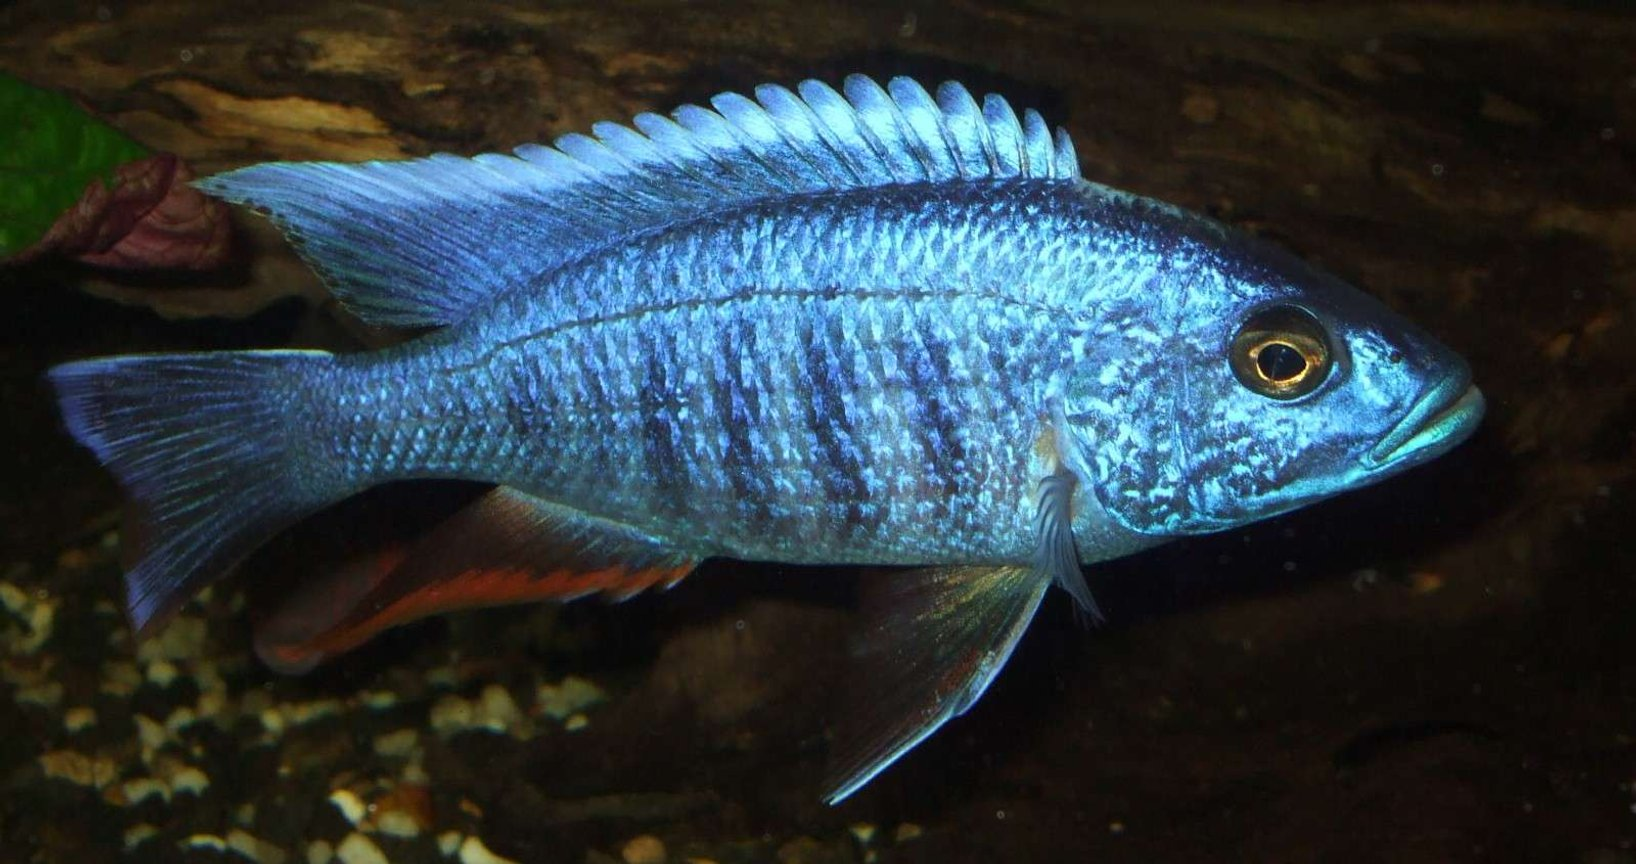 freshwater fish - sciaenochromis ahli - electric blue cichlid stocking in 90 gallons tank - electric blue also killed by idiot